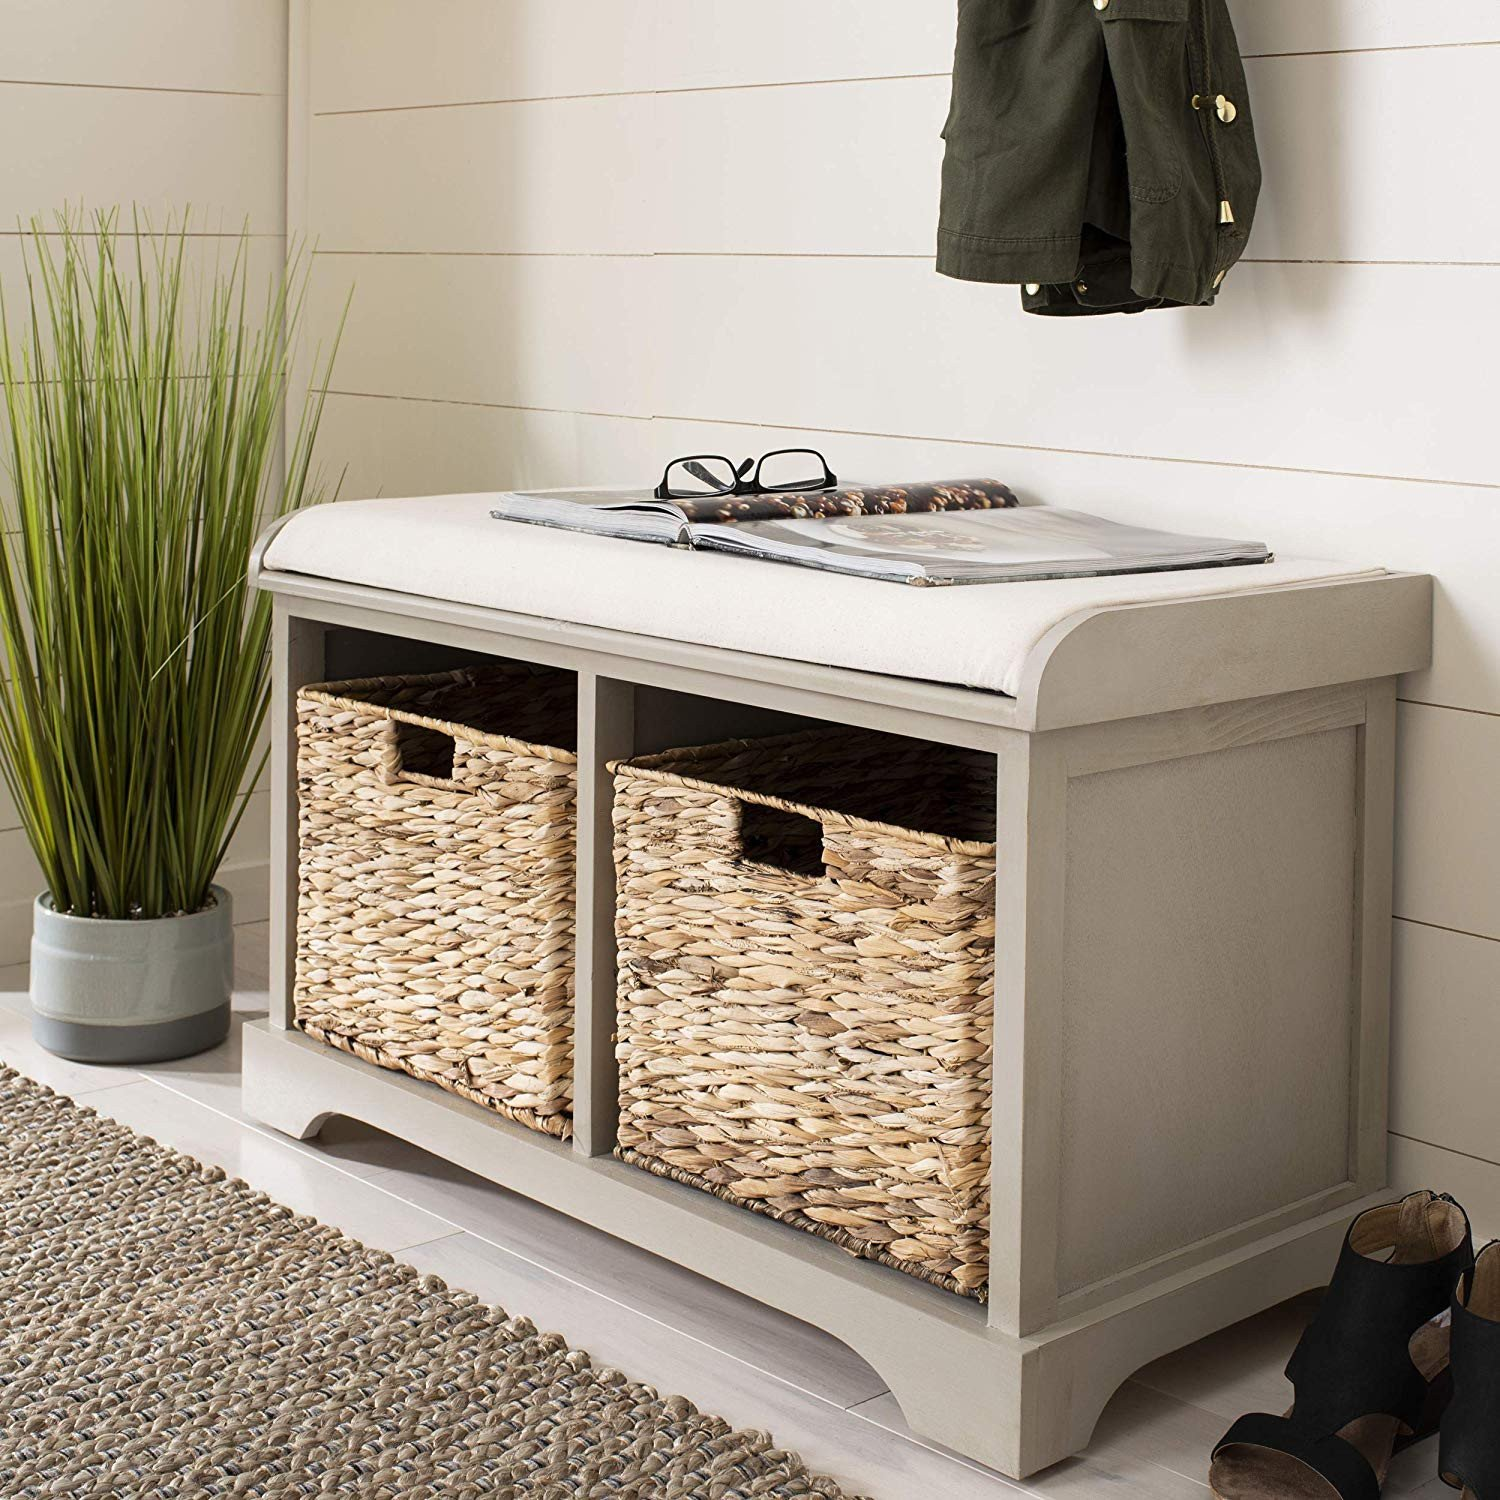 Bedroom Storage Bench Seat Lovely Safavieh American Homes Collection Freddy Brown Wicker Storage Bench